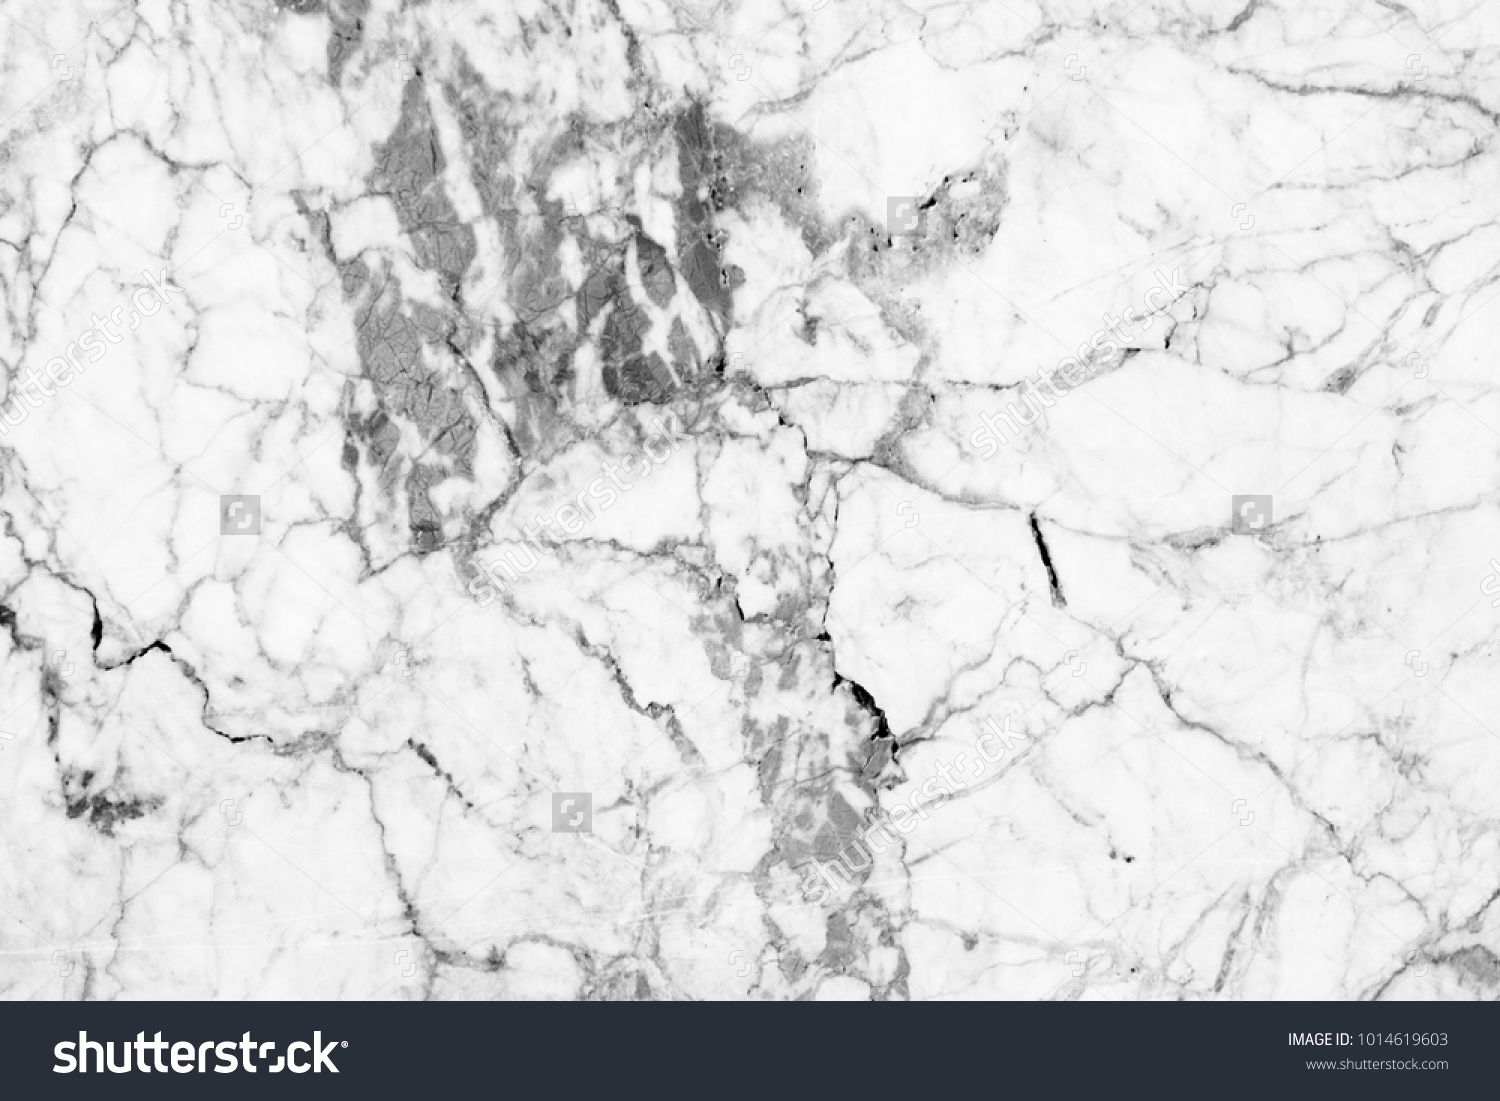 Fantastic Wallpaper High Resolution Marble - stock-photo-natural-white-marble-texture-for-skin-tile-wallpaper-luxurious-background-creative-stone-ceramic-1014619603  2018_941989.jpg